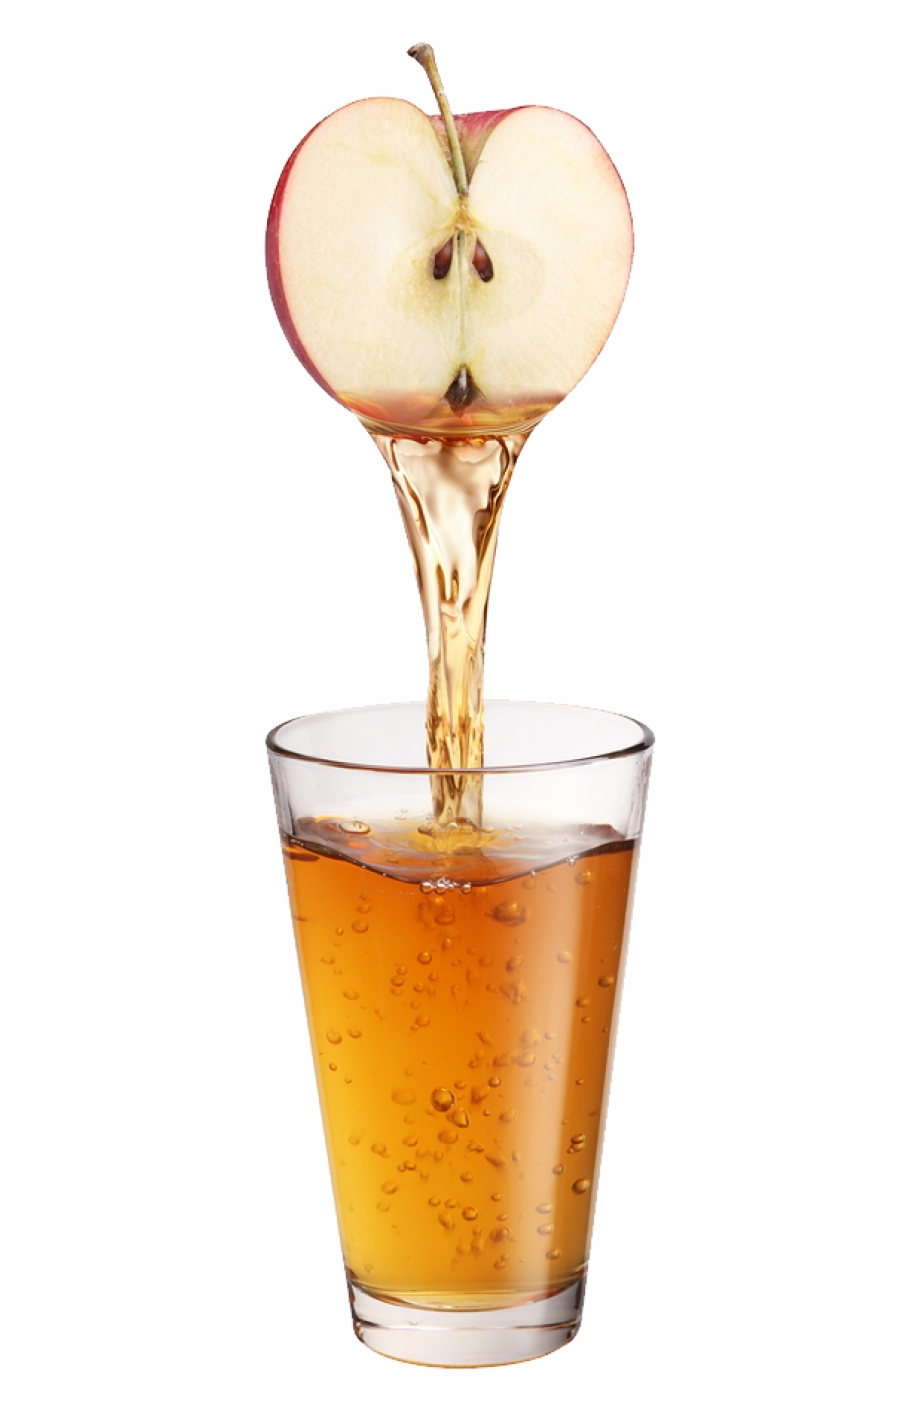 Apple Juice Png Image, Download Png Image With Transparent.